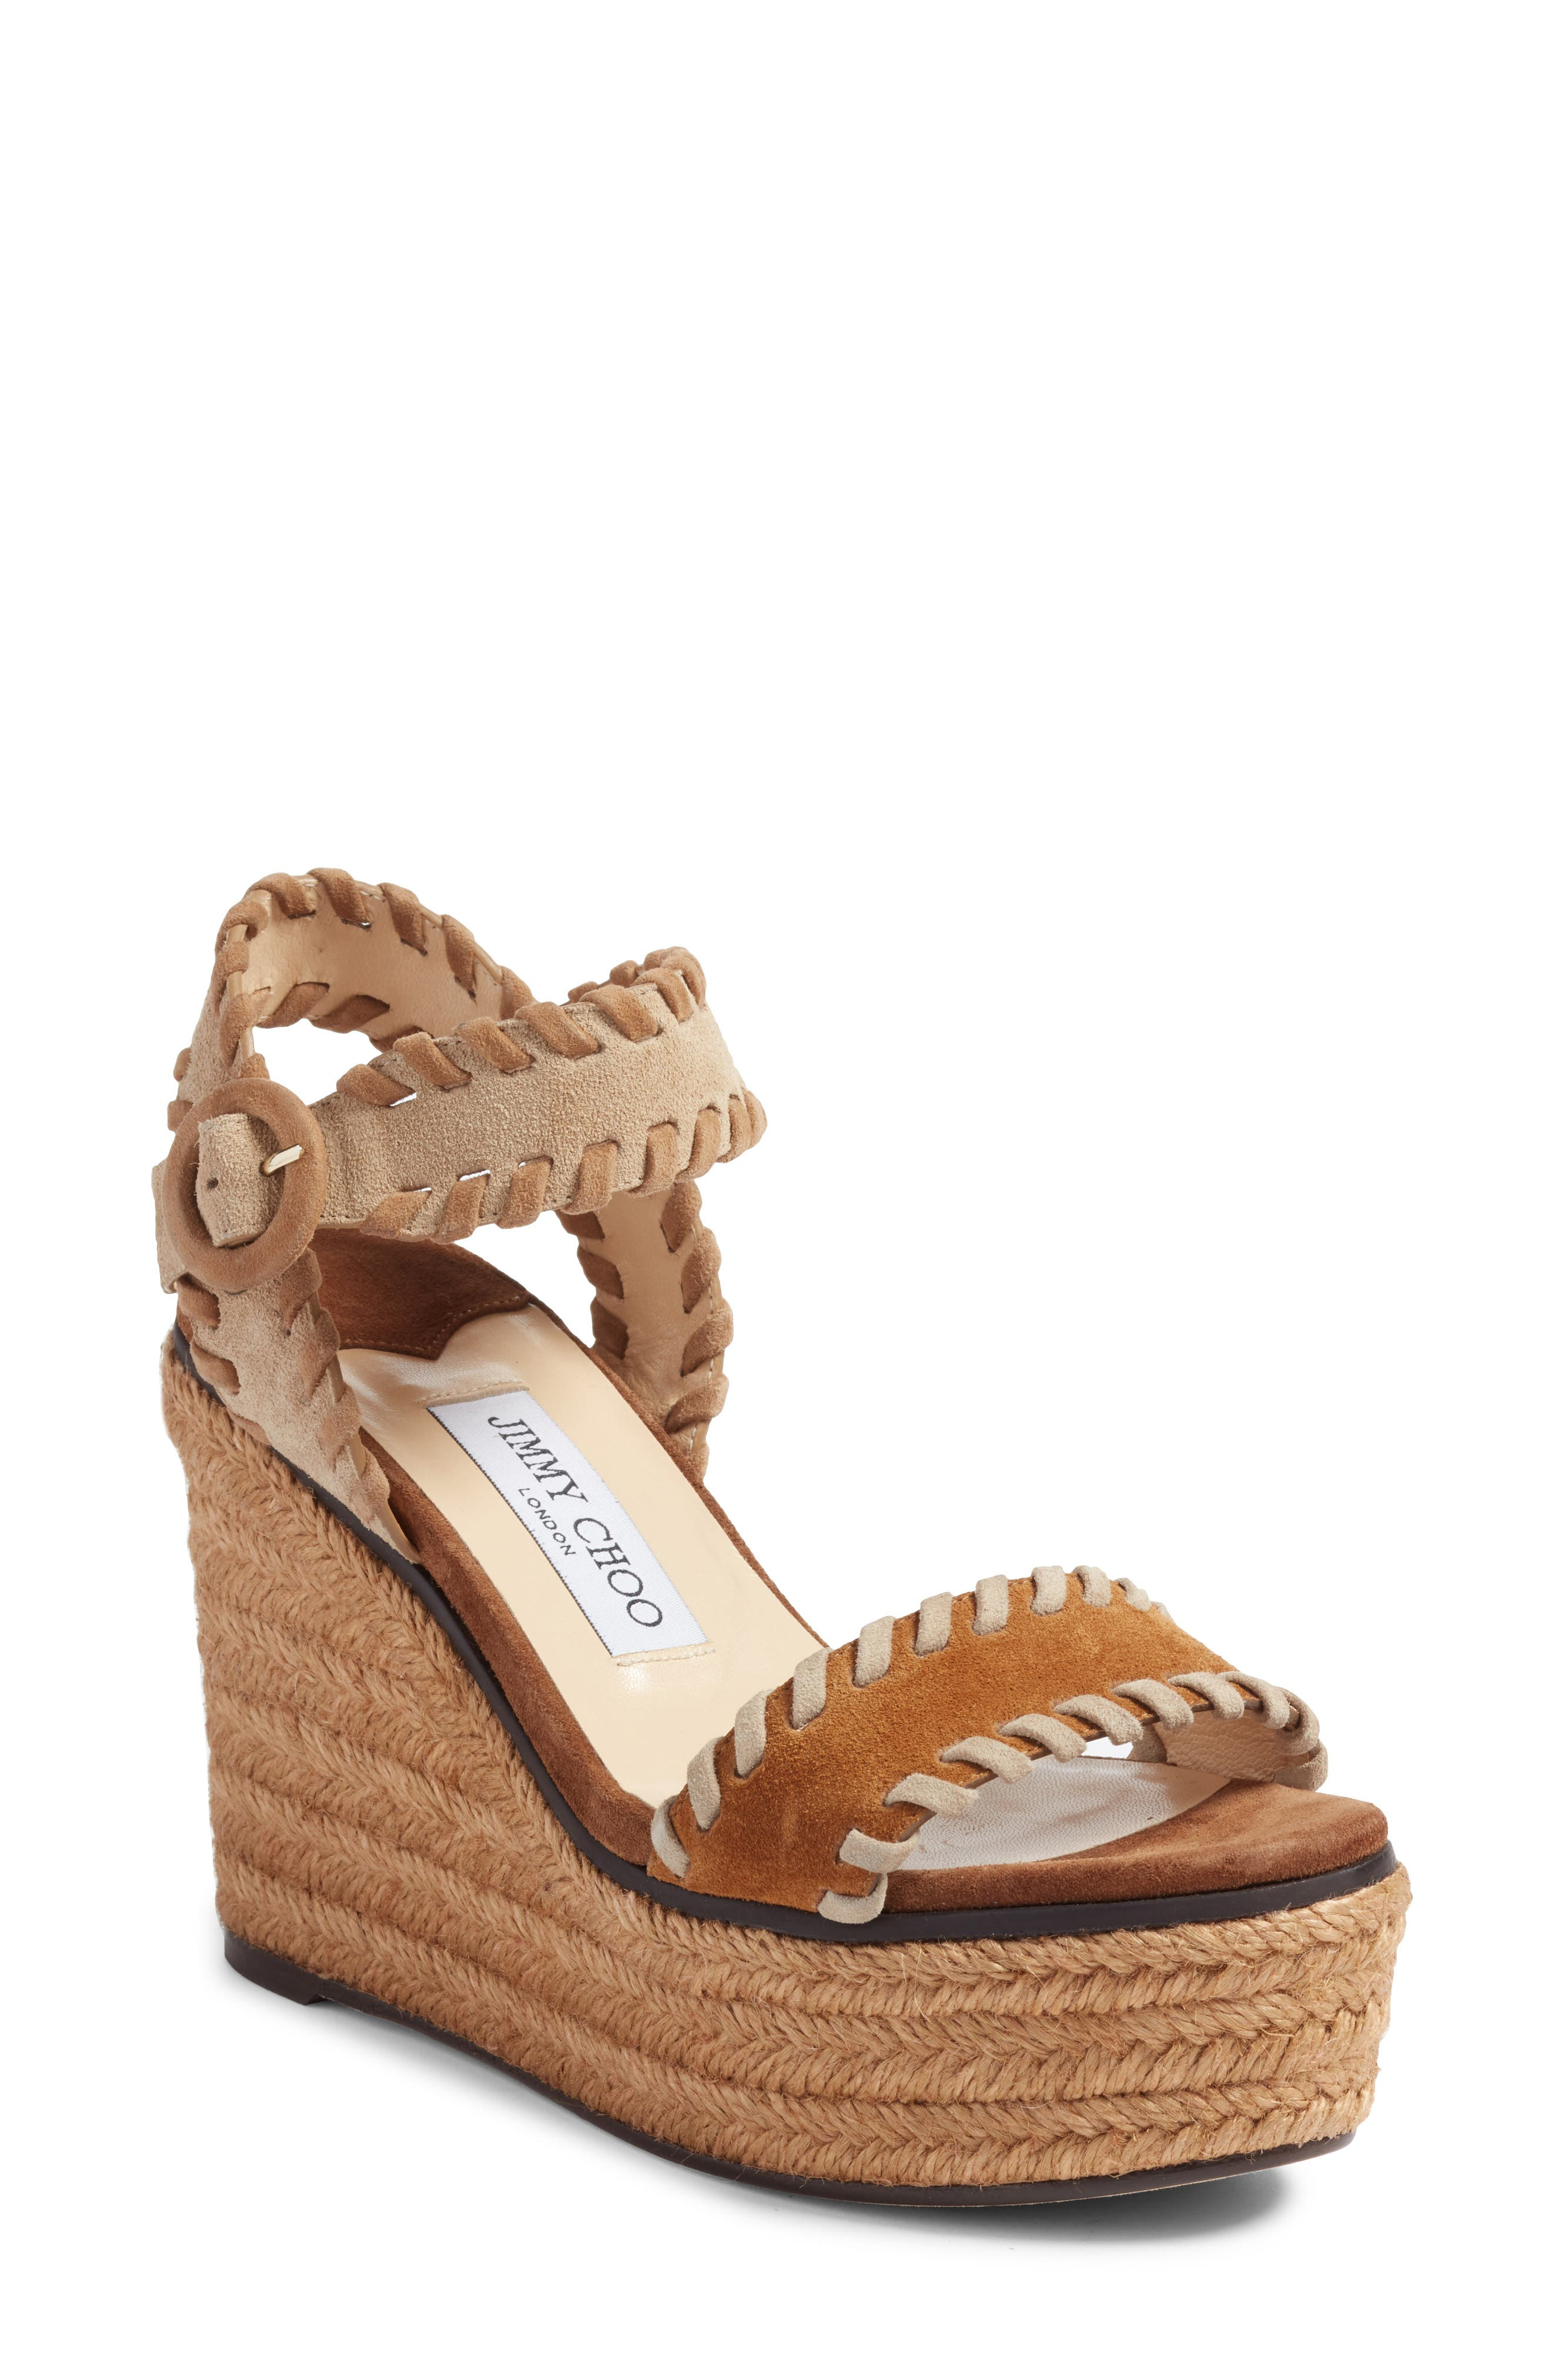 JIMMY CHOO Abigail Whipstitch Wedge, Main, color, NATURAL/ BROWN